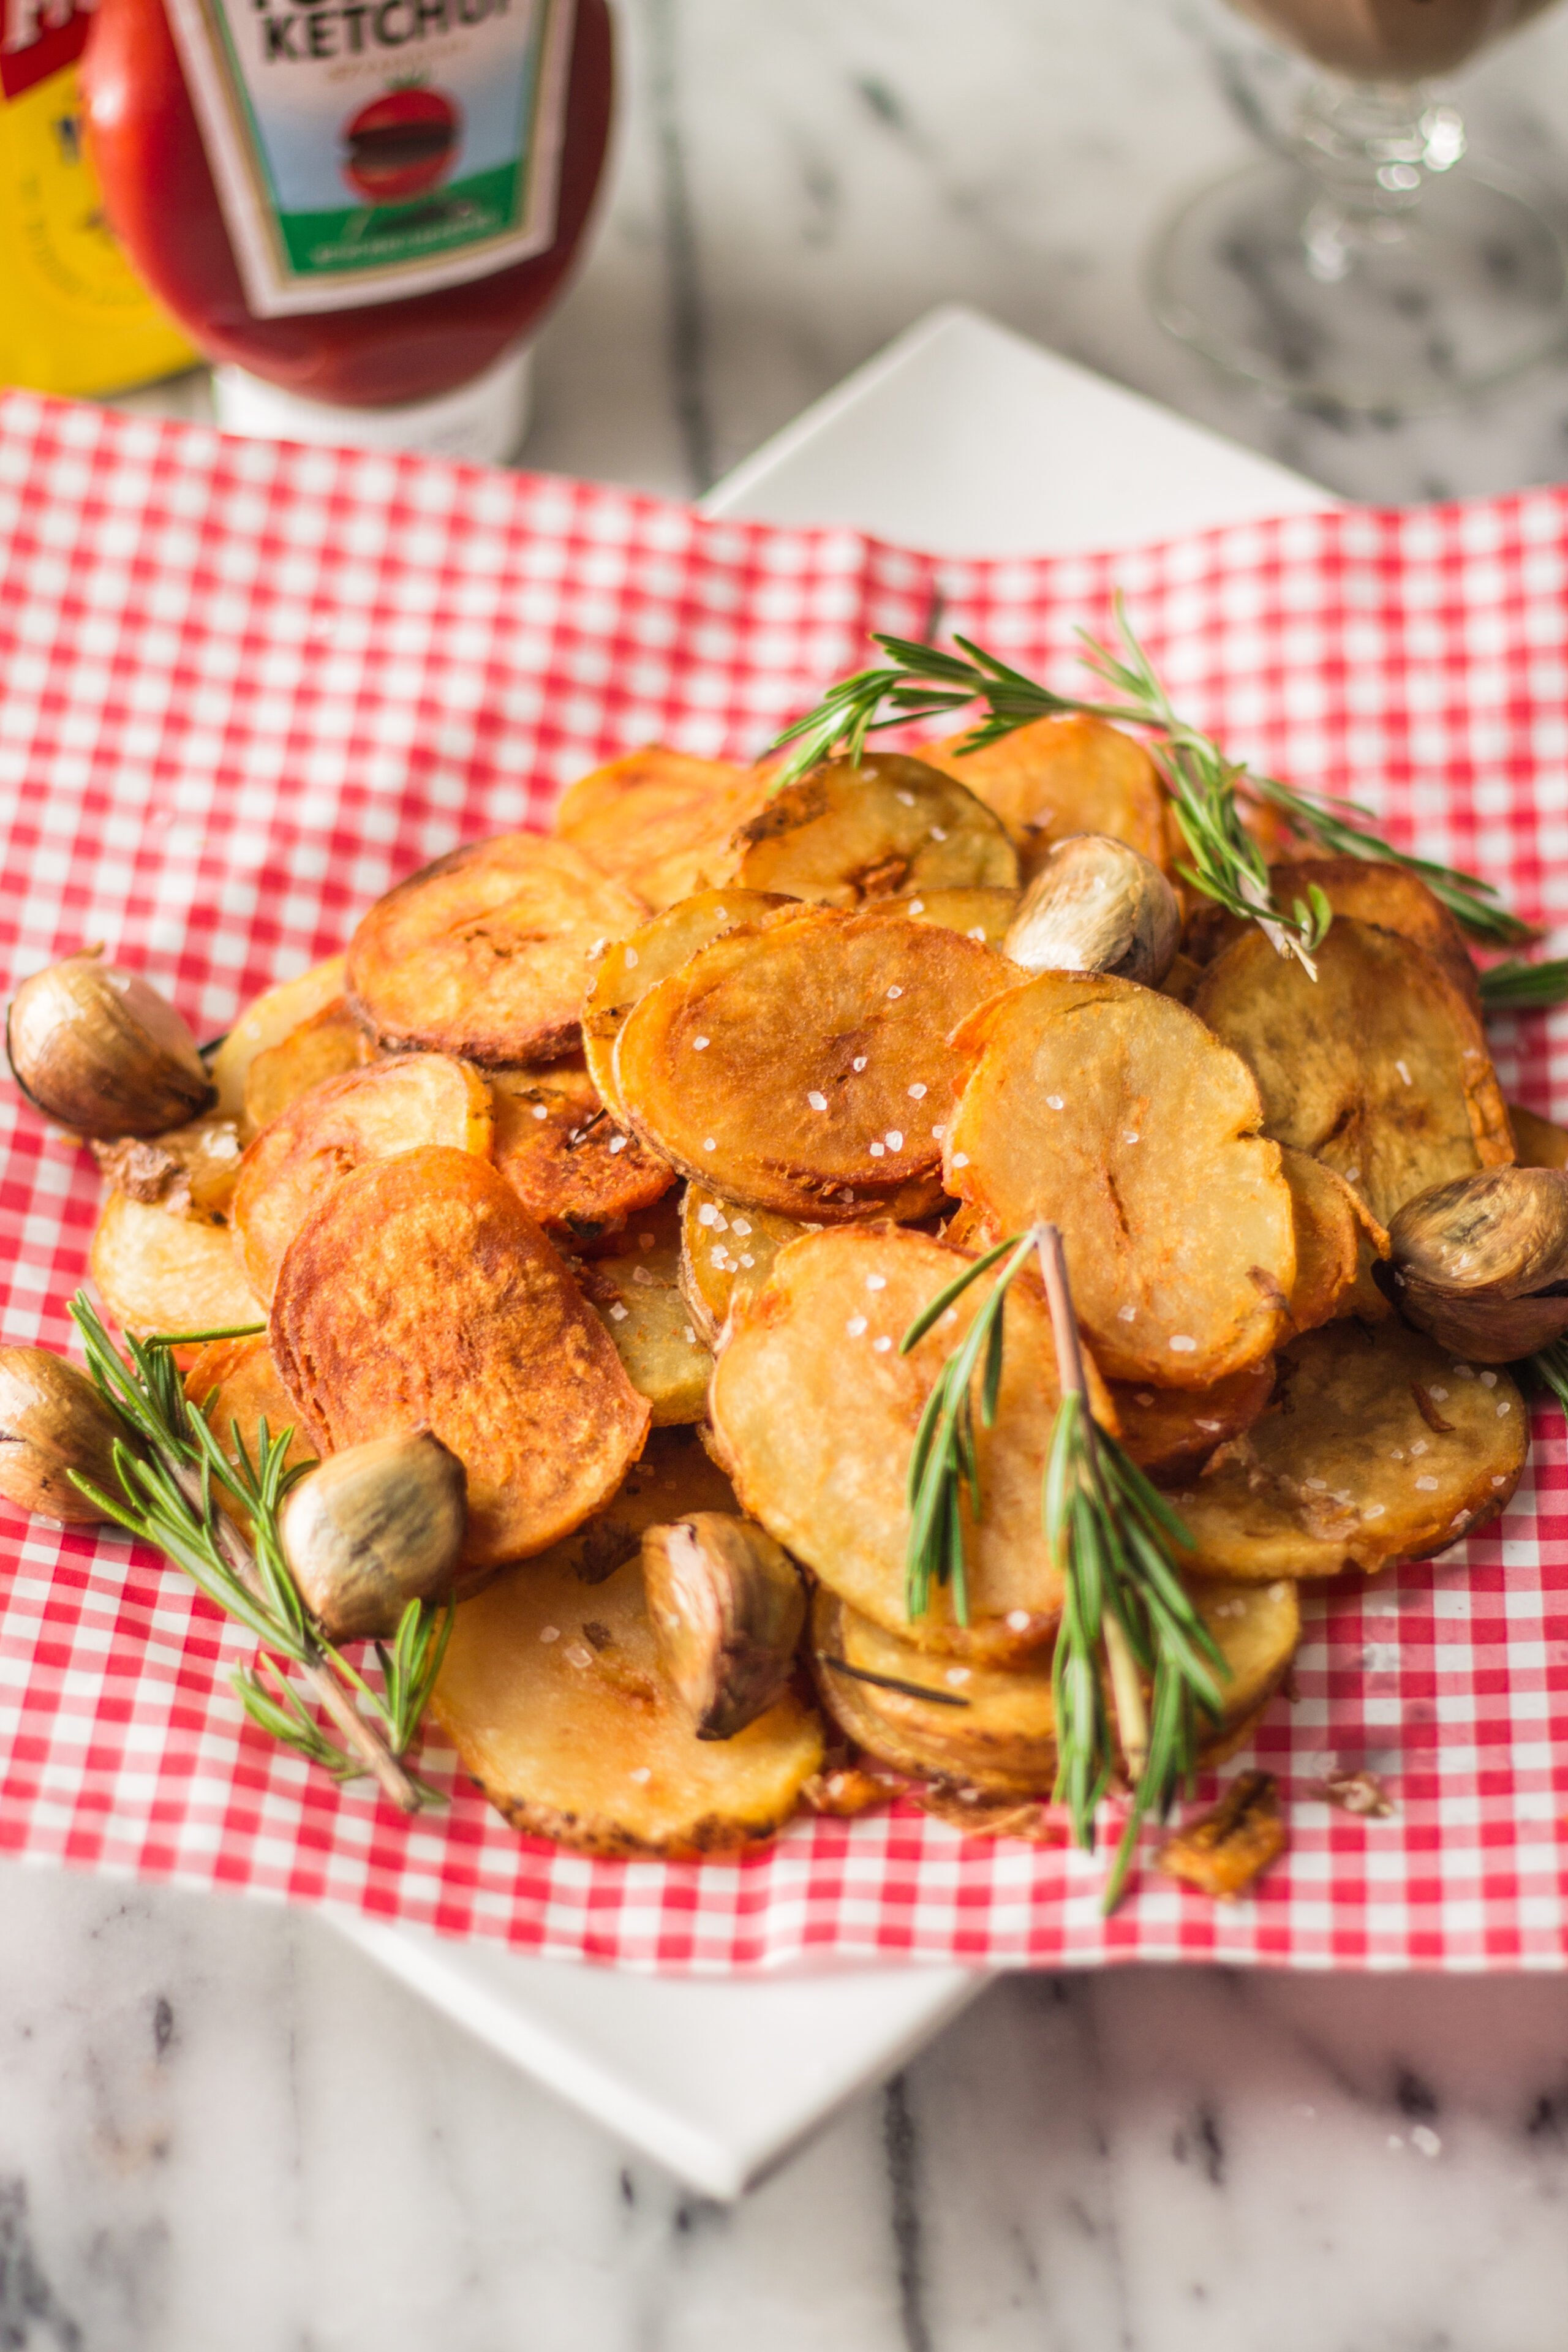 Homemade Rustic Chips